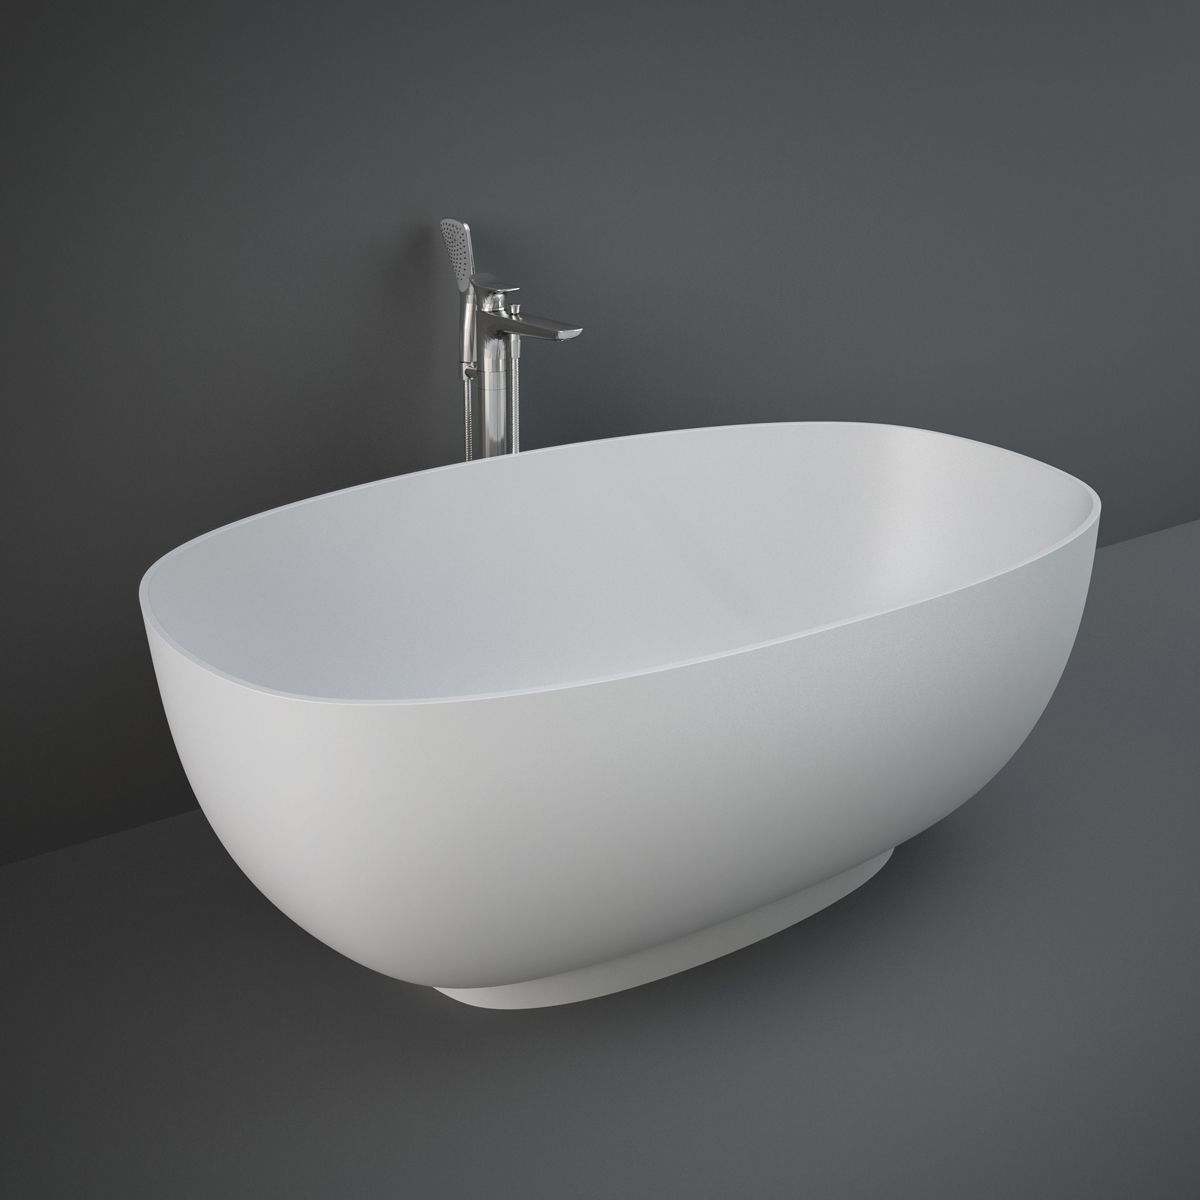 RAK Cloud Matt White Freestanding Bath 1400mm